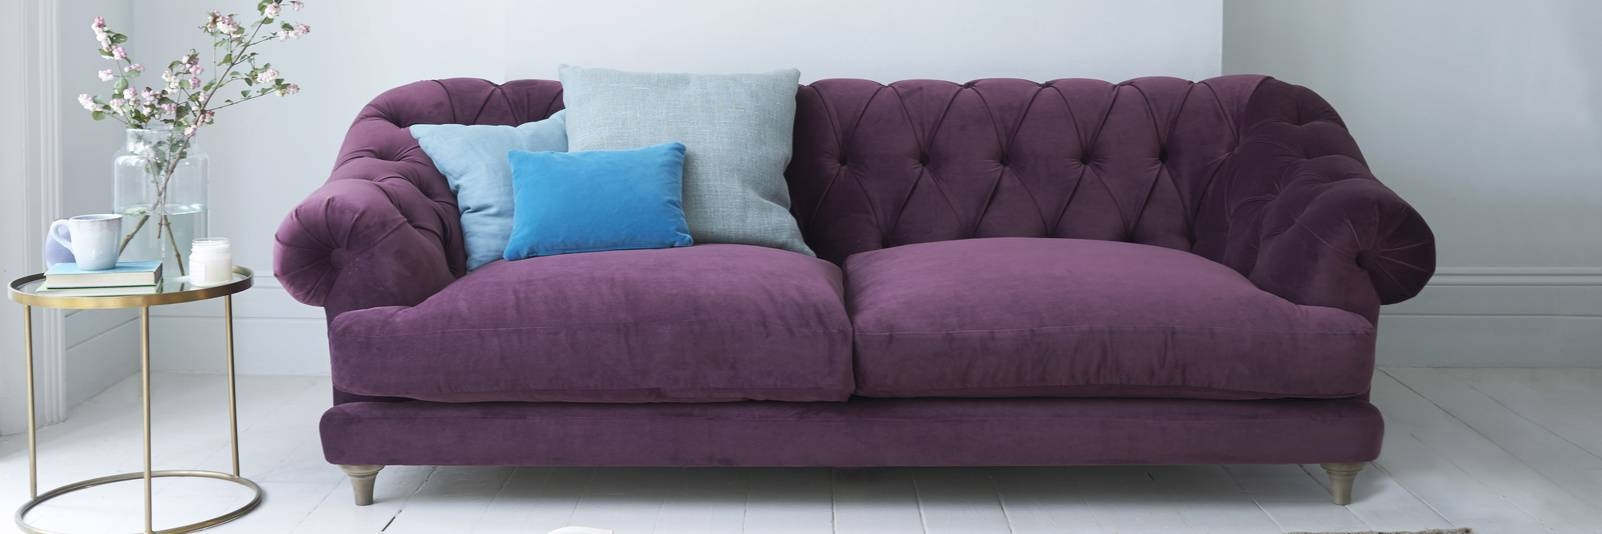 Purple Velvet Sofas | Made In Blighty | Loaf within Velvet Purple Sofas (Image 20 of 30)